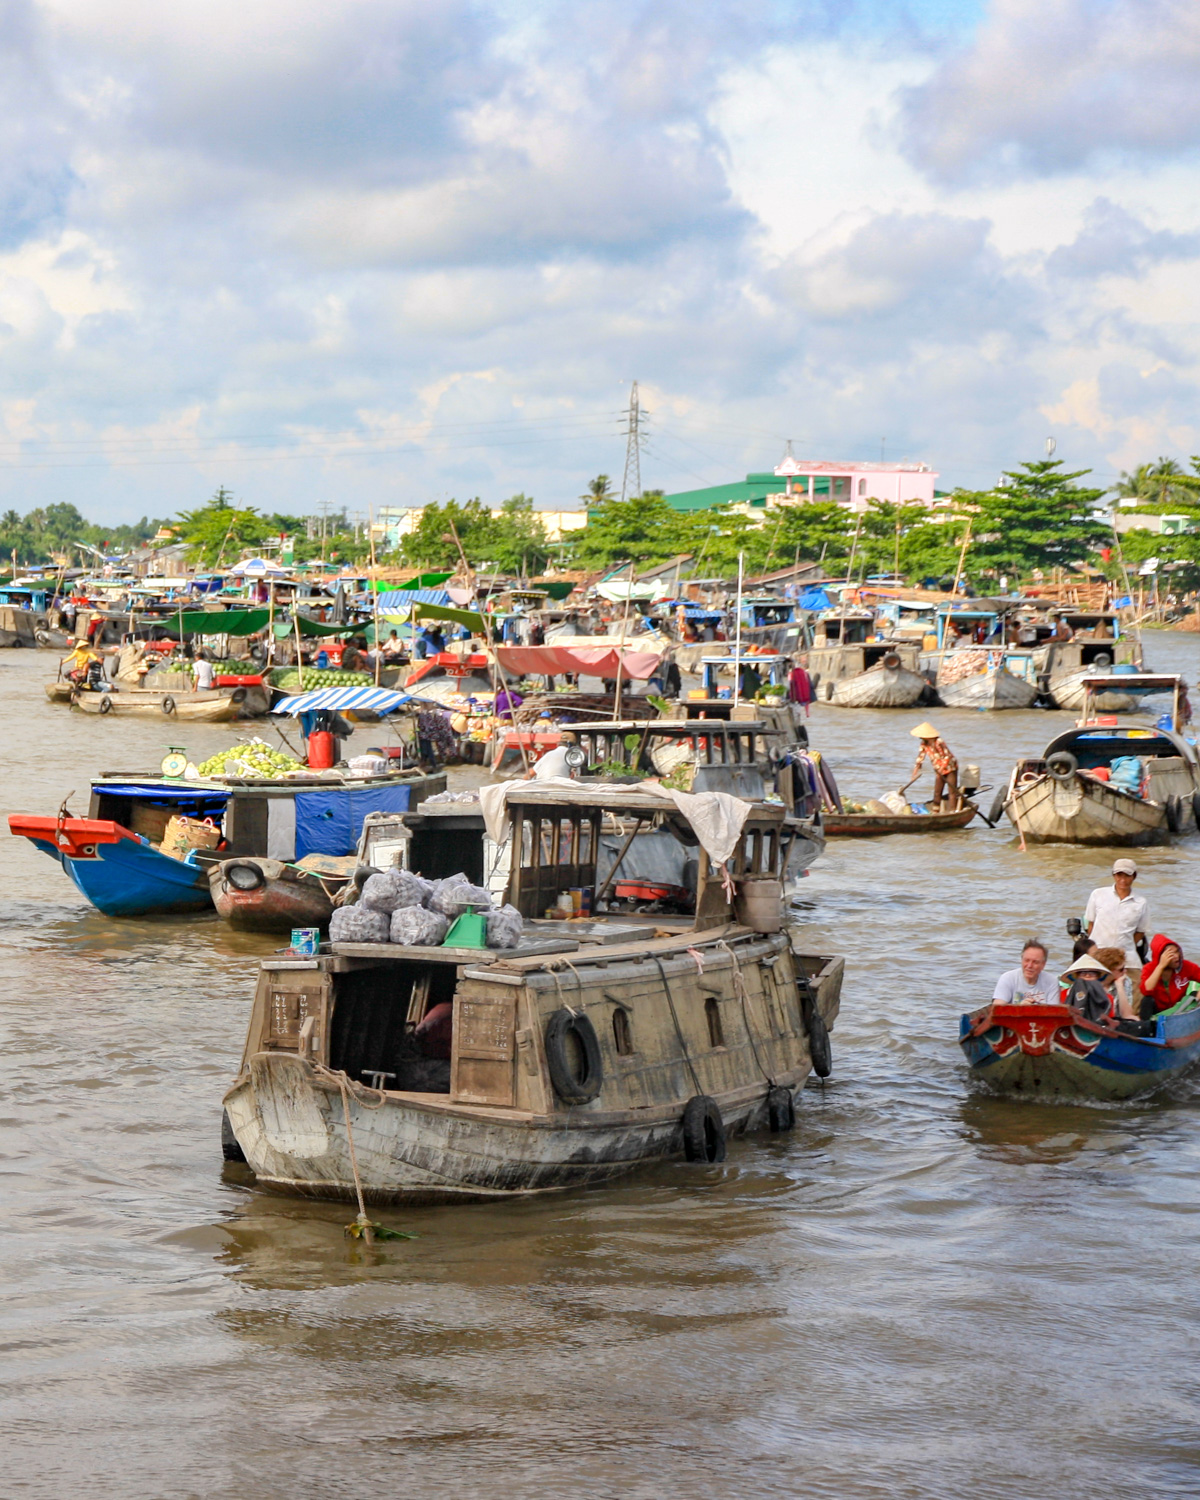 The floating market in the Mekong Delta, Vietnam